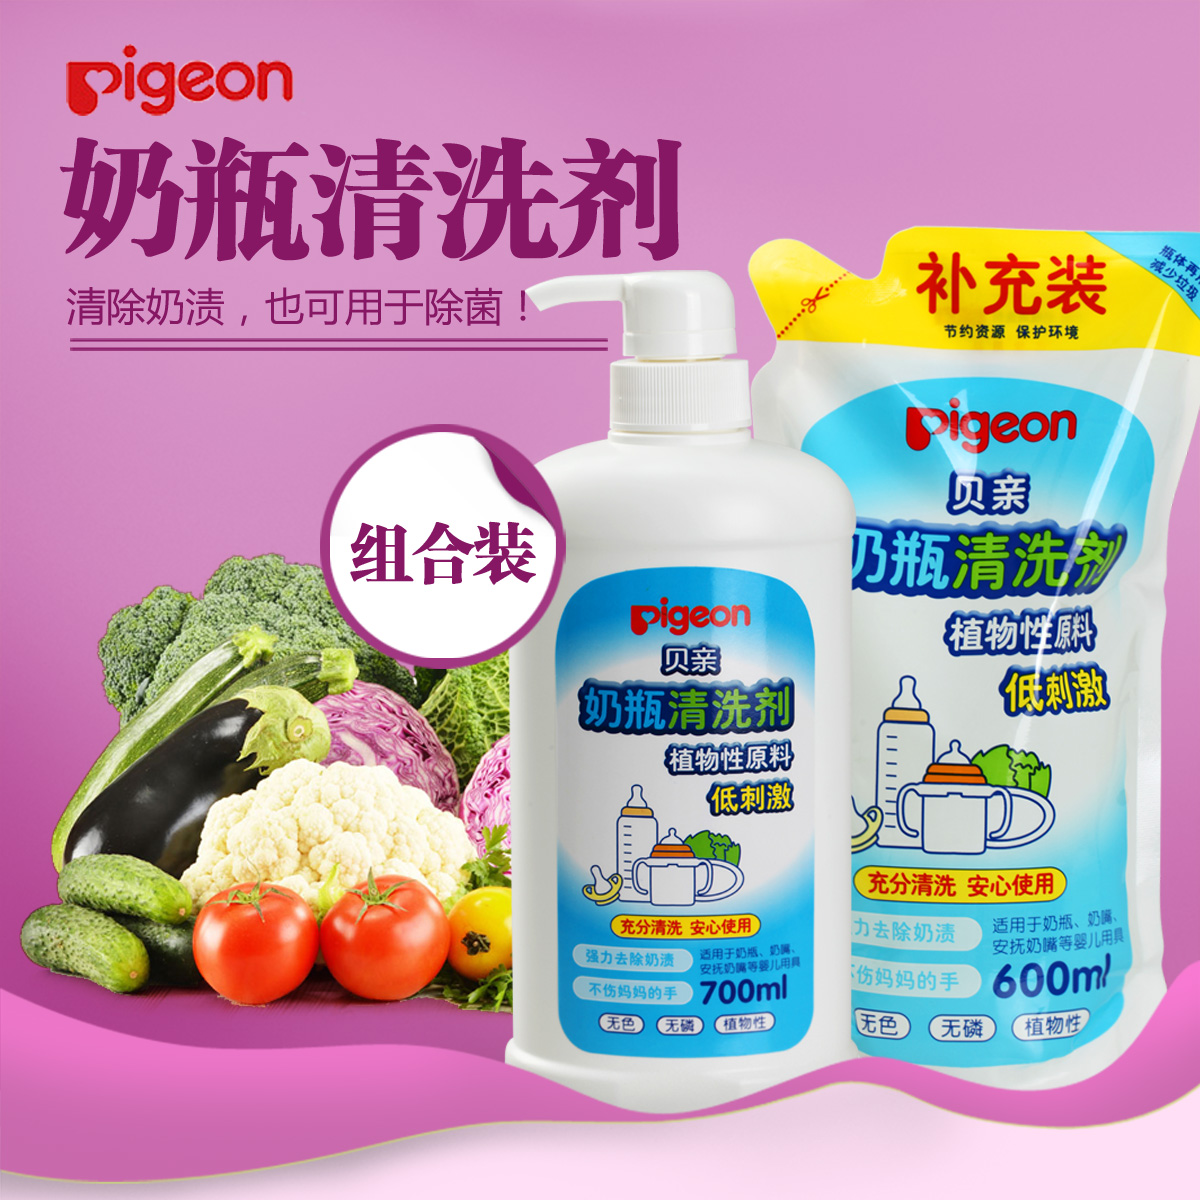 Pigeon PL71 (700ml+600ml) pigeon english